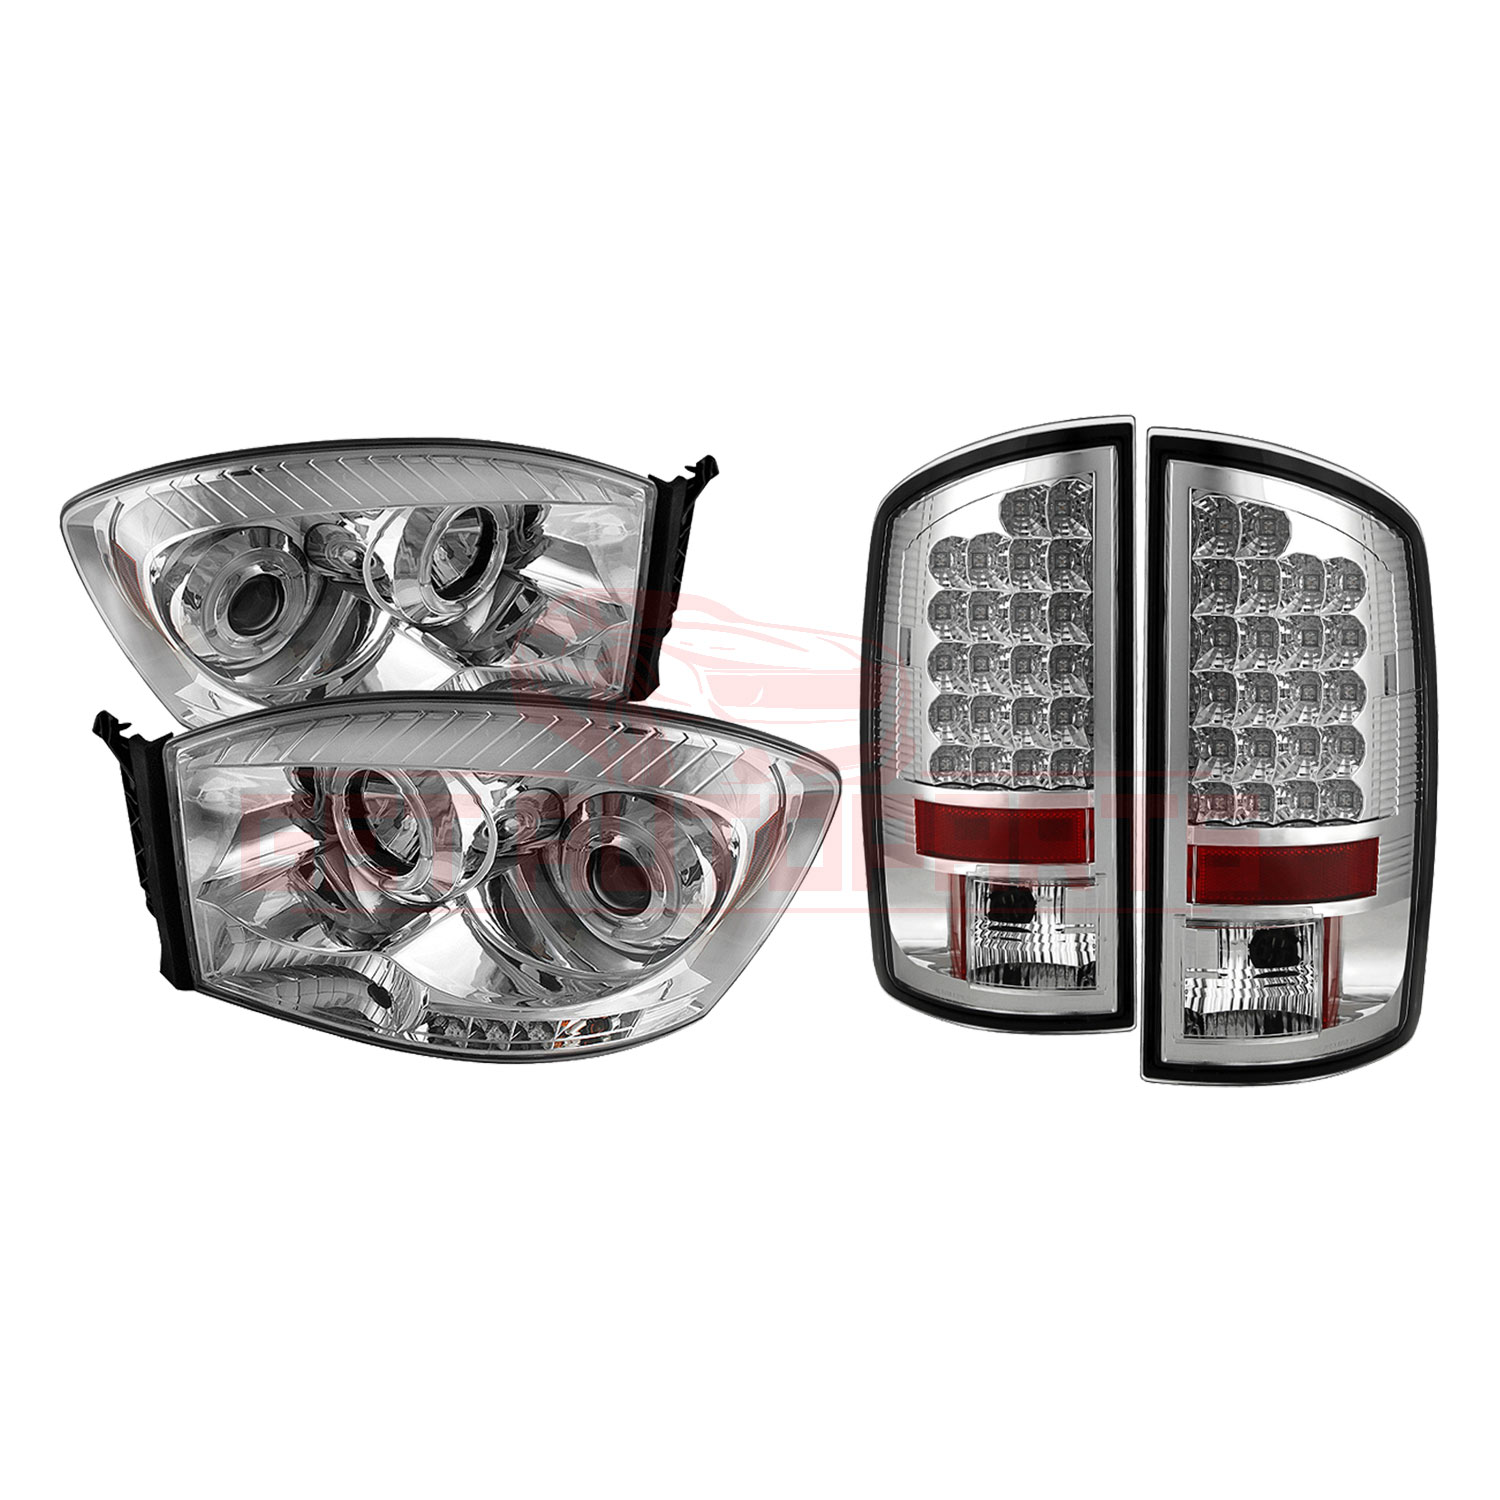 Spyder Halo LED Projector Headlights & LED Tail Lights - for Dodge Ram 07-08 part in Headlight & Tail Light Covers category